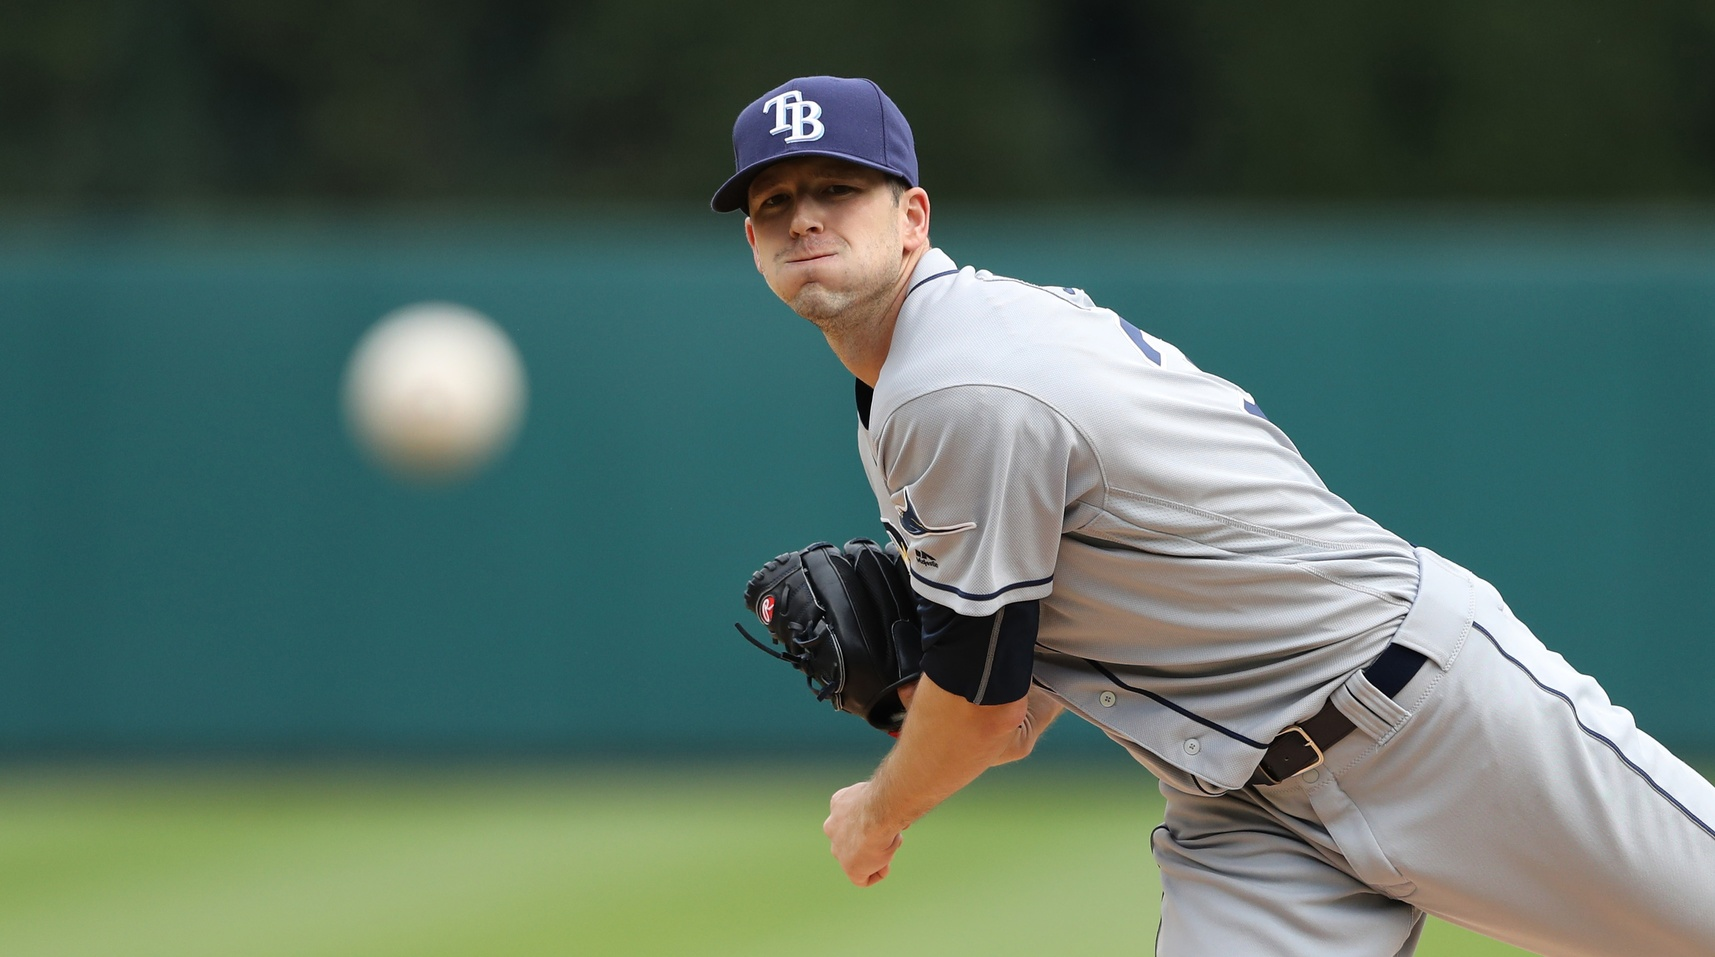 Cubs Sign Pitcher Drew Smyly To 2-Year Deal